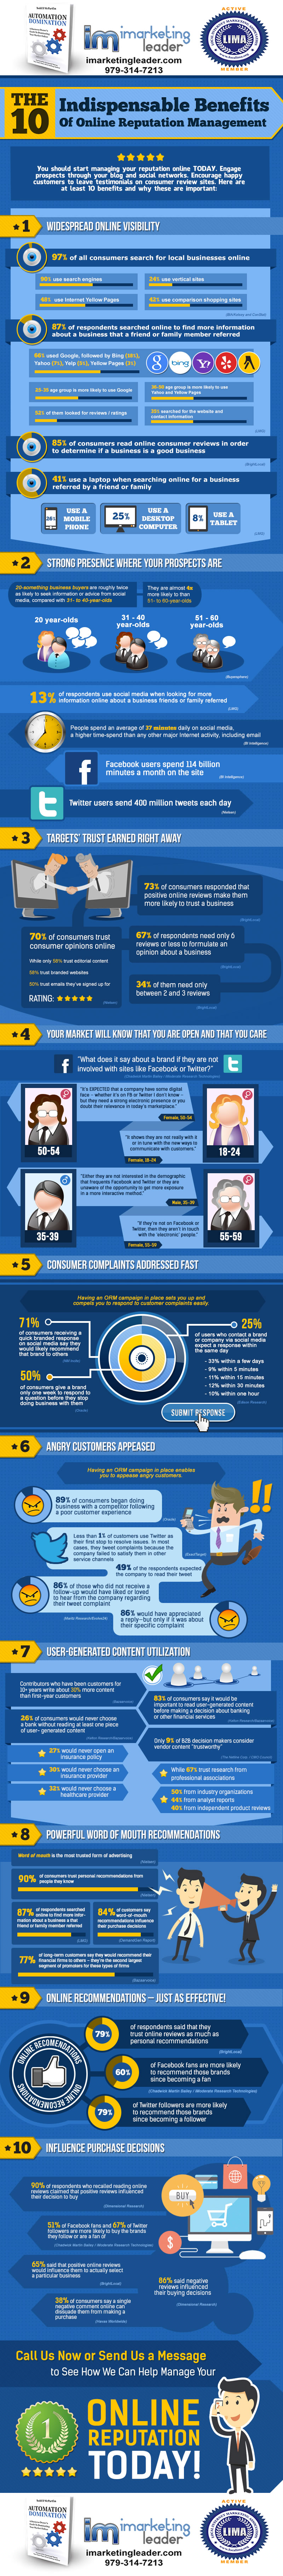 Online-Reputation-Marketing-Infographic